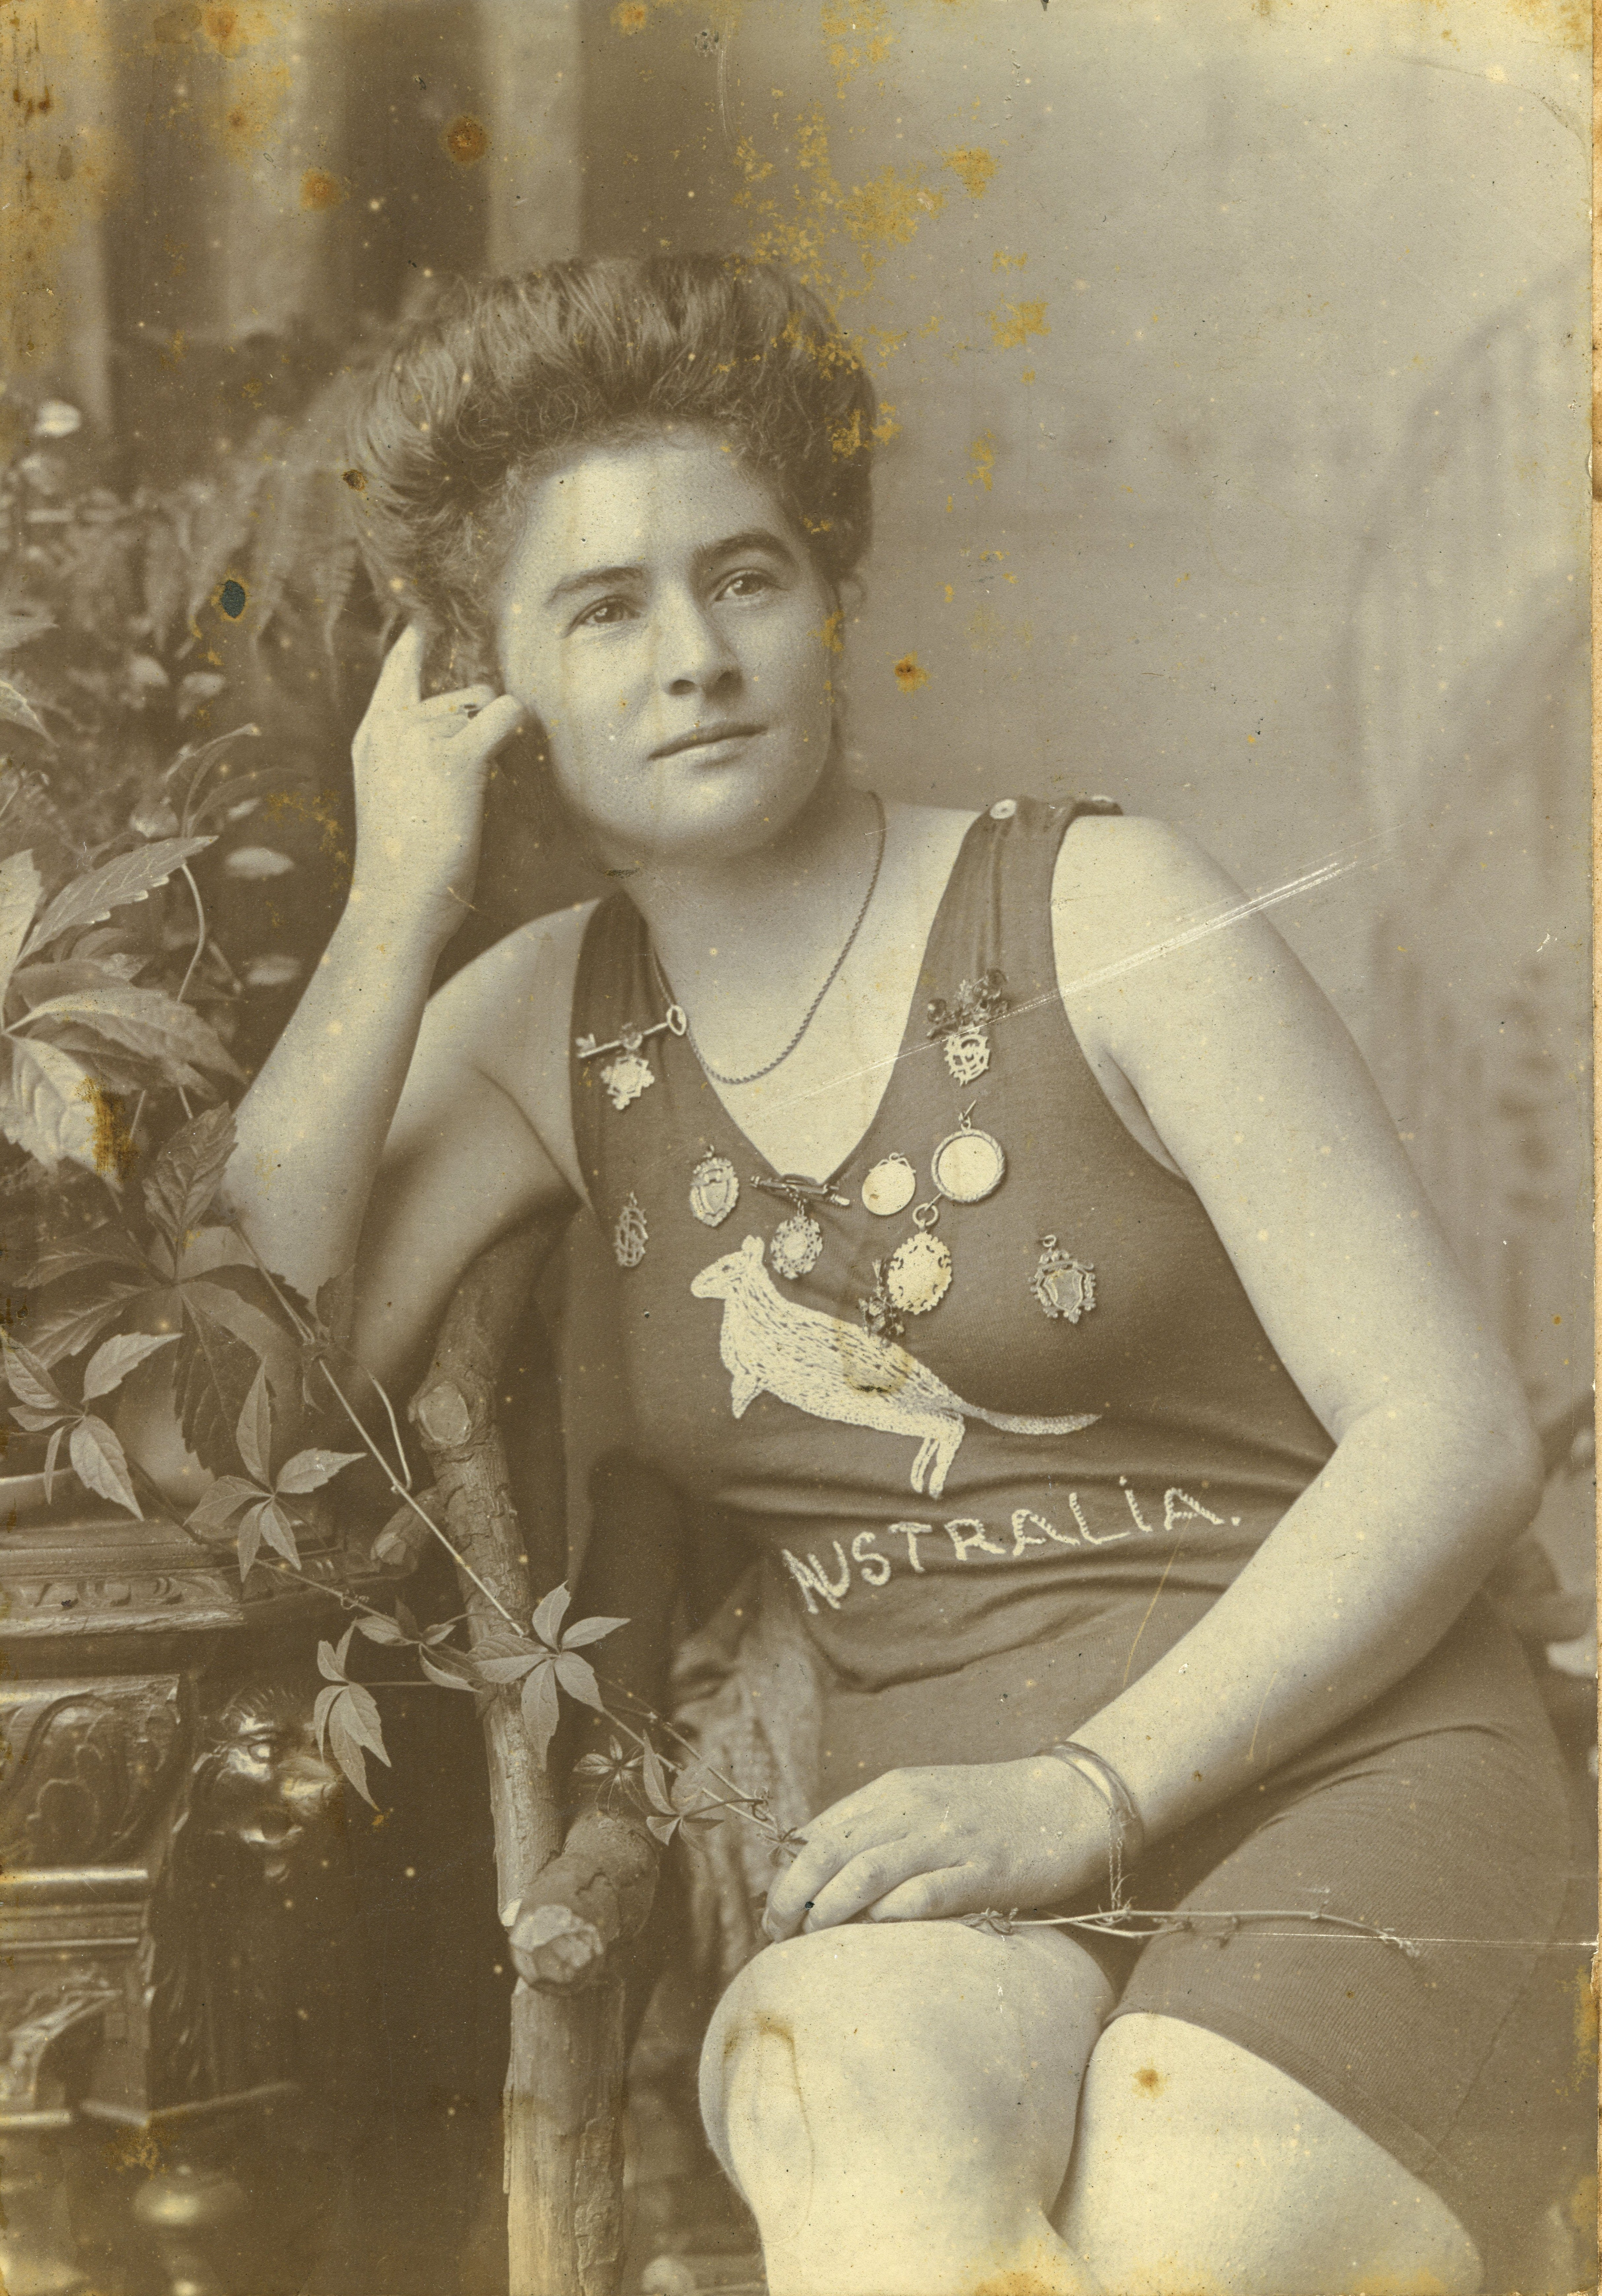 Photograph of Beatrice Kerr in her Australian swimsuit